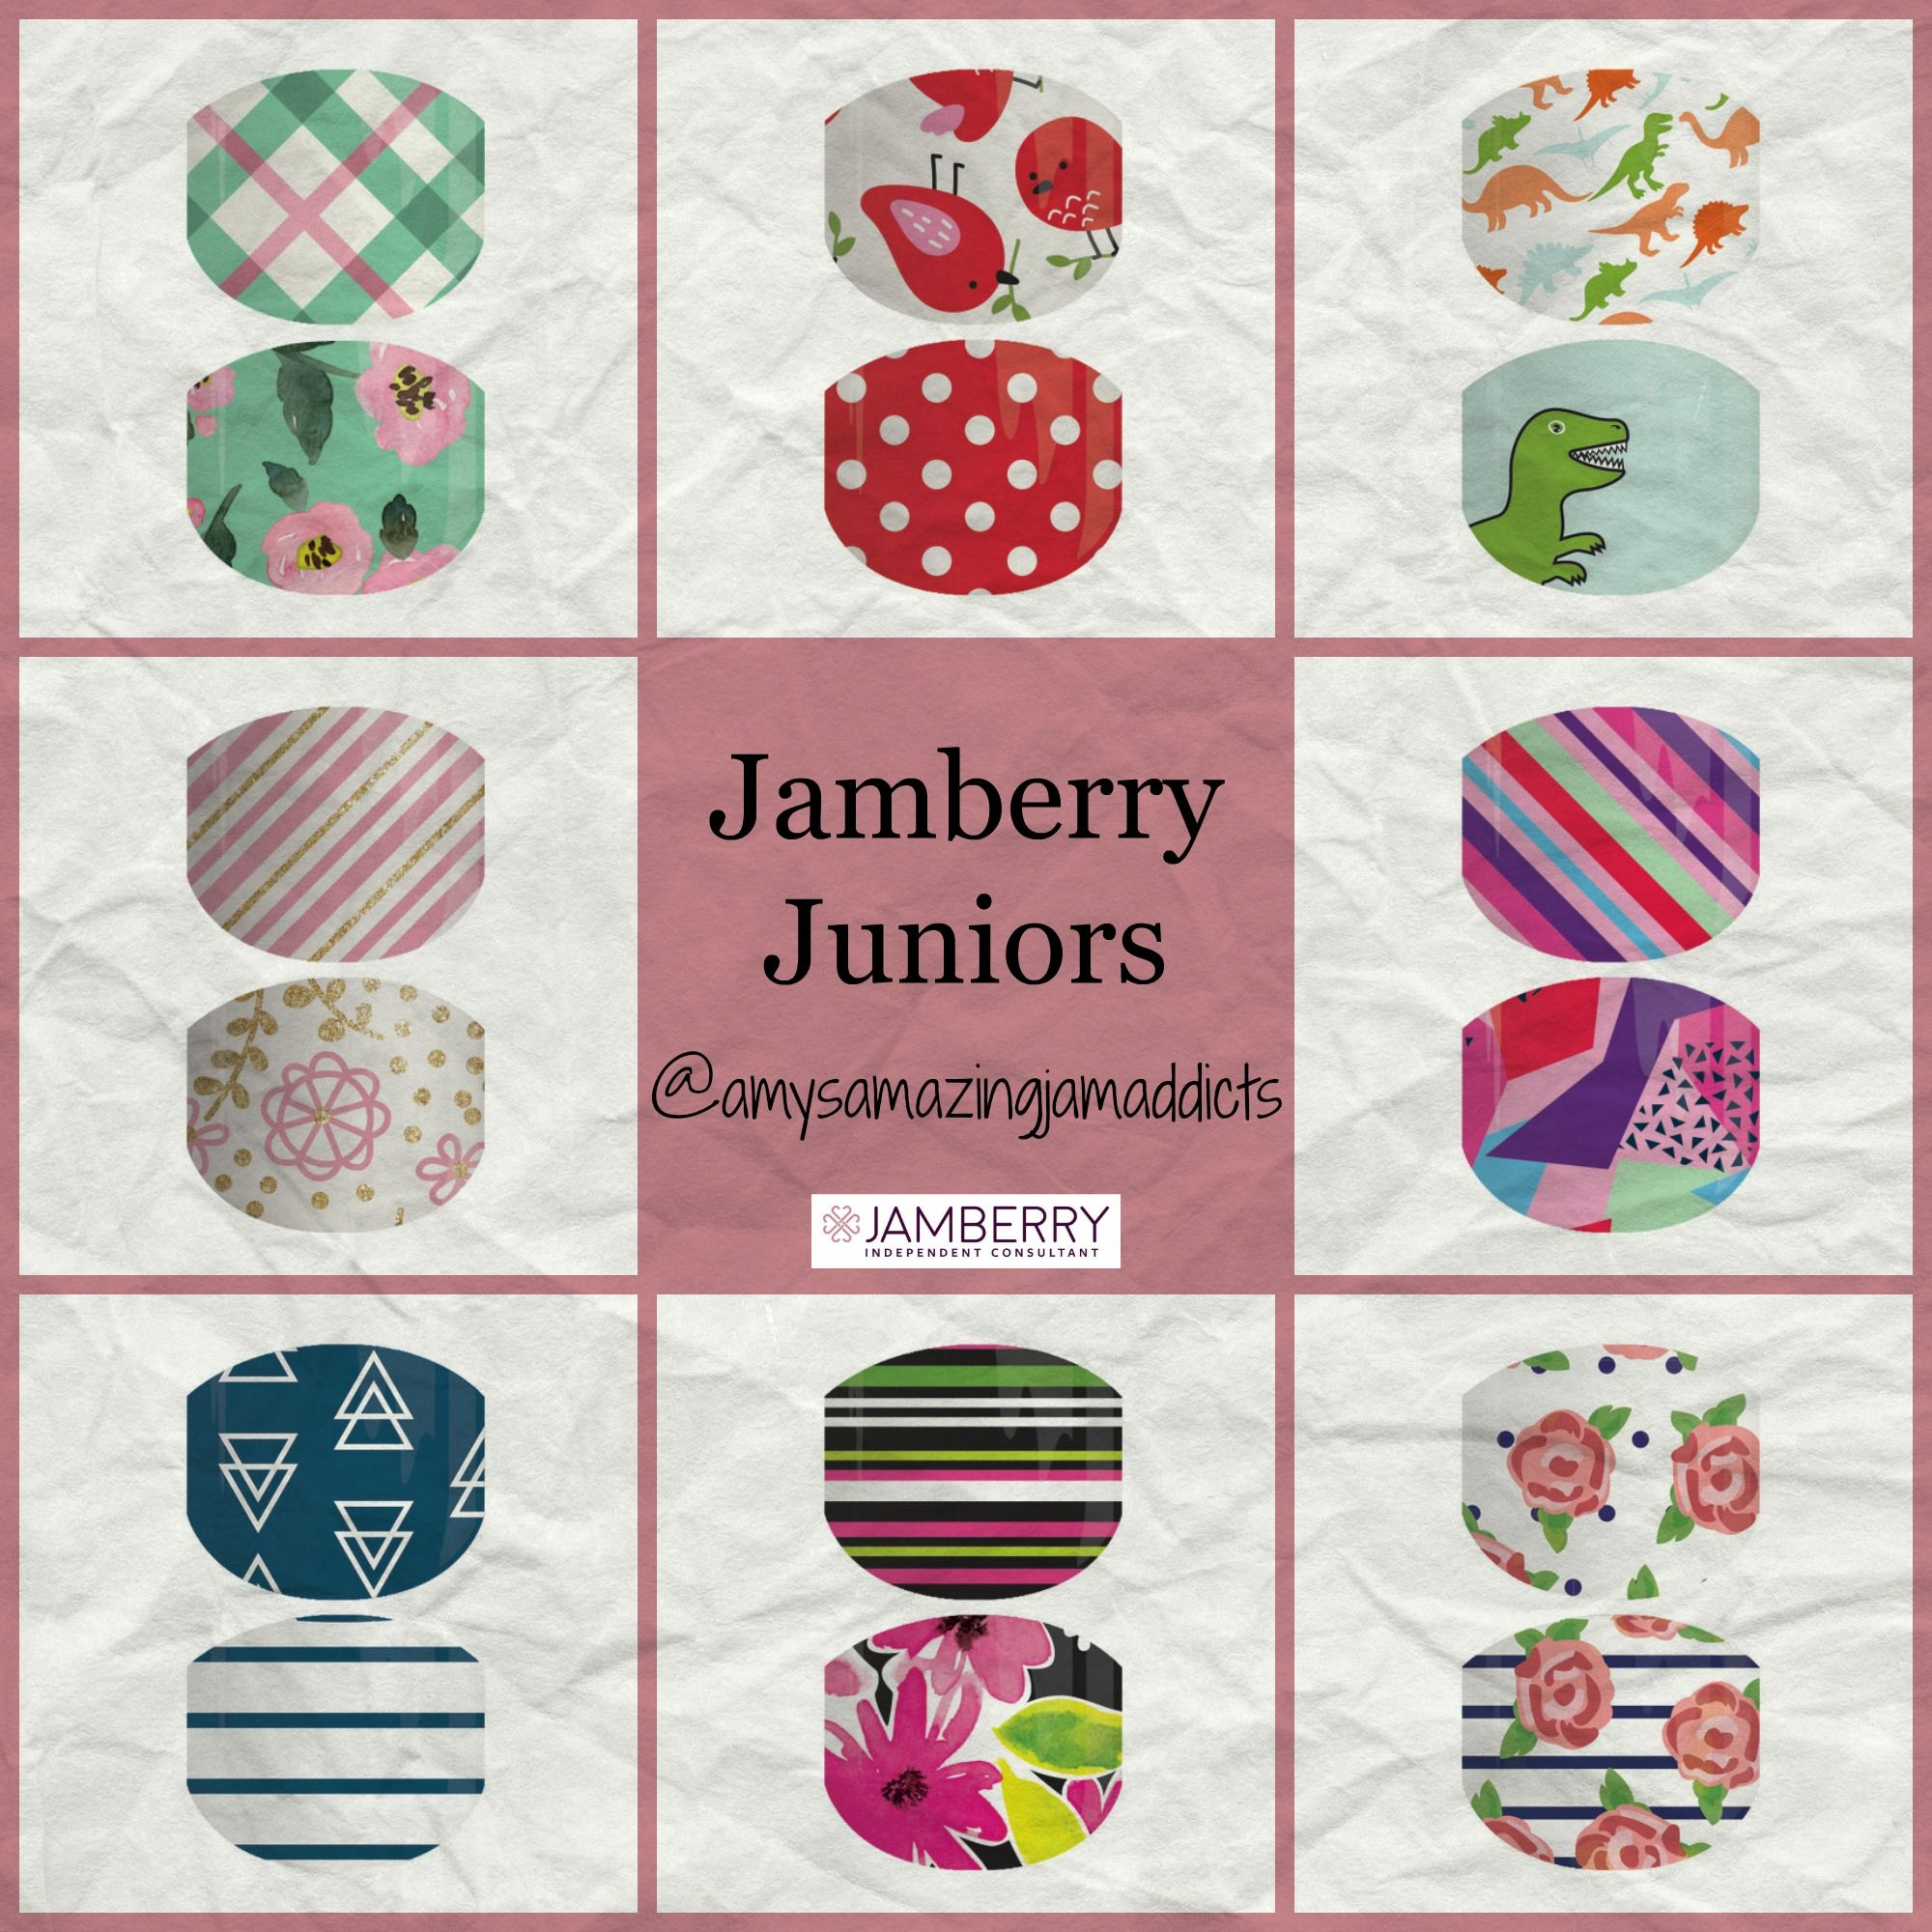 Jamberry Juniors Are The Perfect Nail Wraps For Children Or Adults